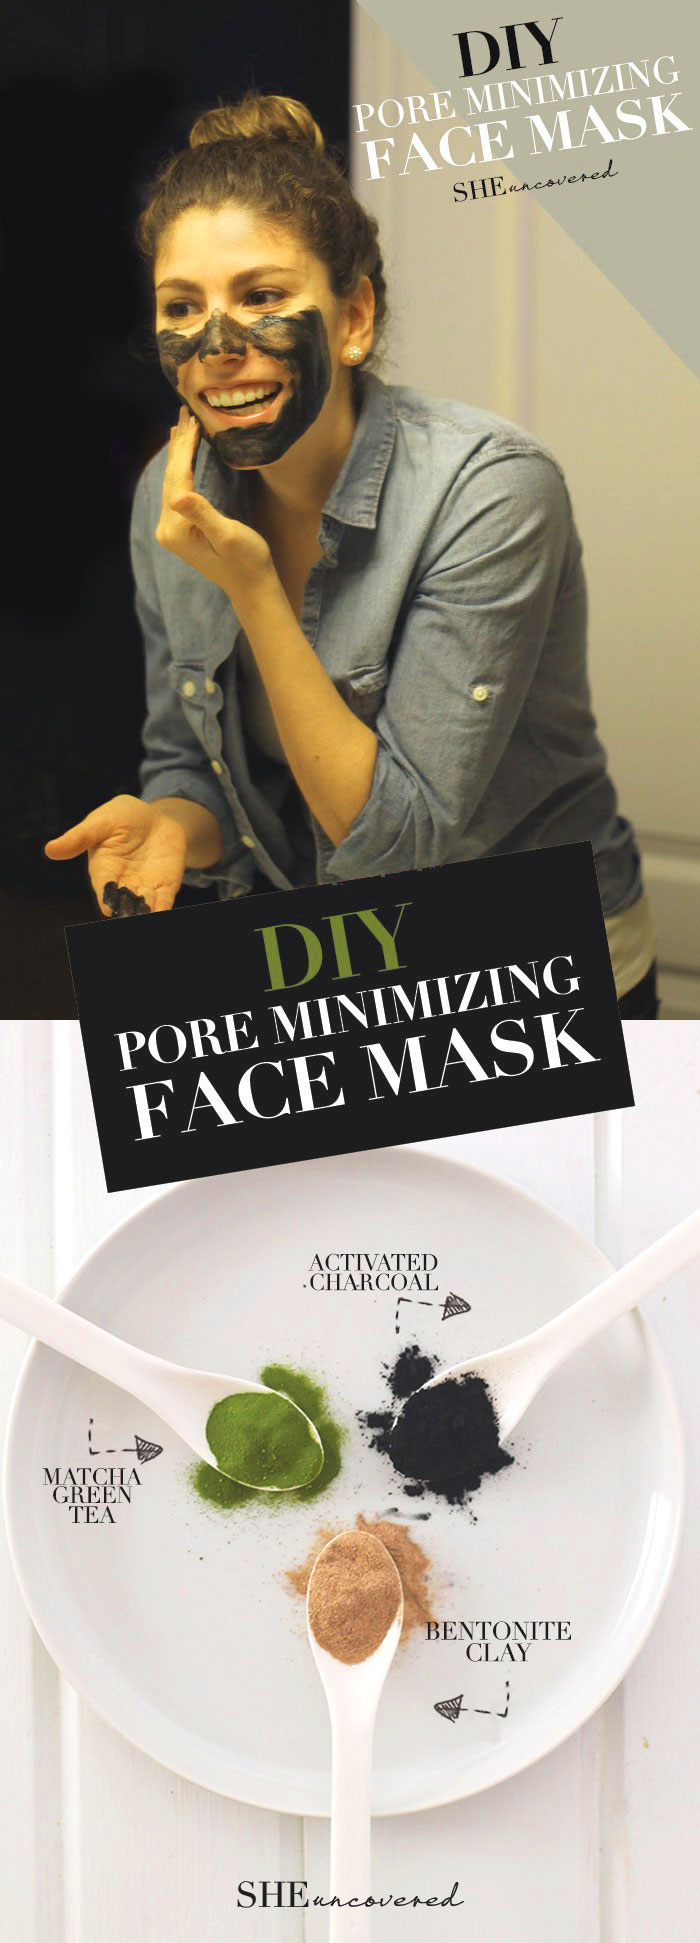 Diy Pore Minimizing Face Mask